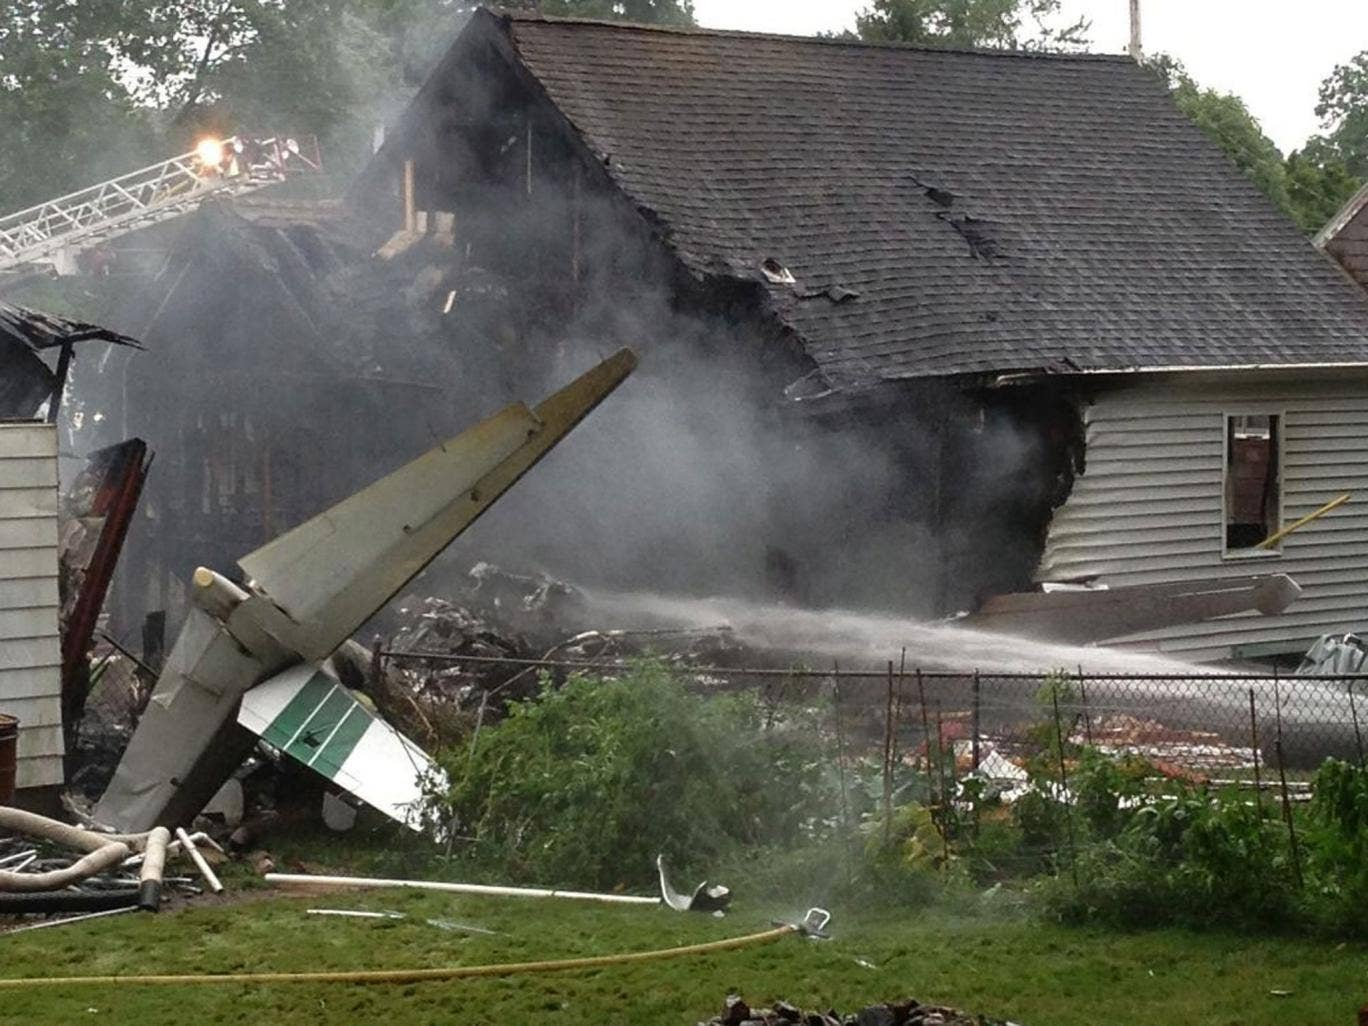 The tail of a small aircraft sits behind a burned home following a crash in East Haven, Connecticut